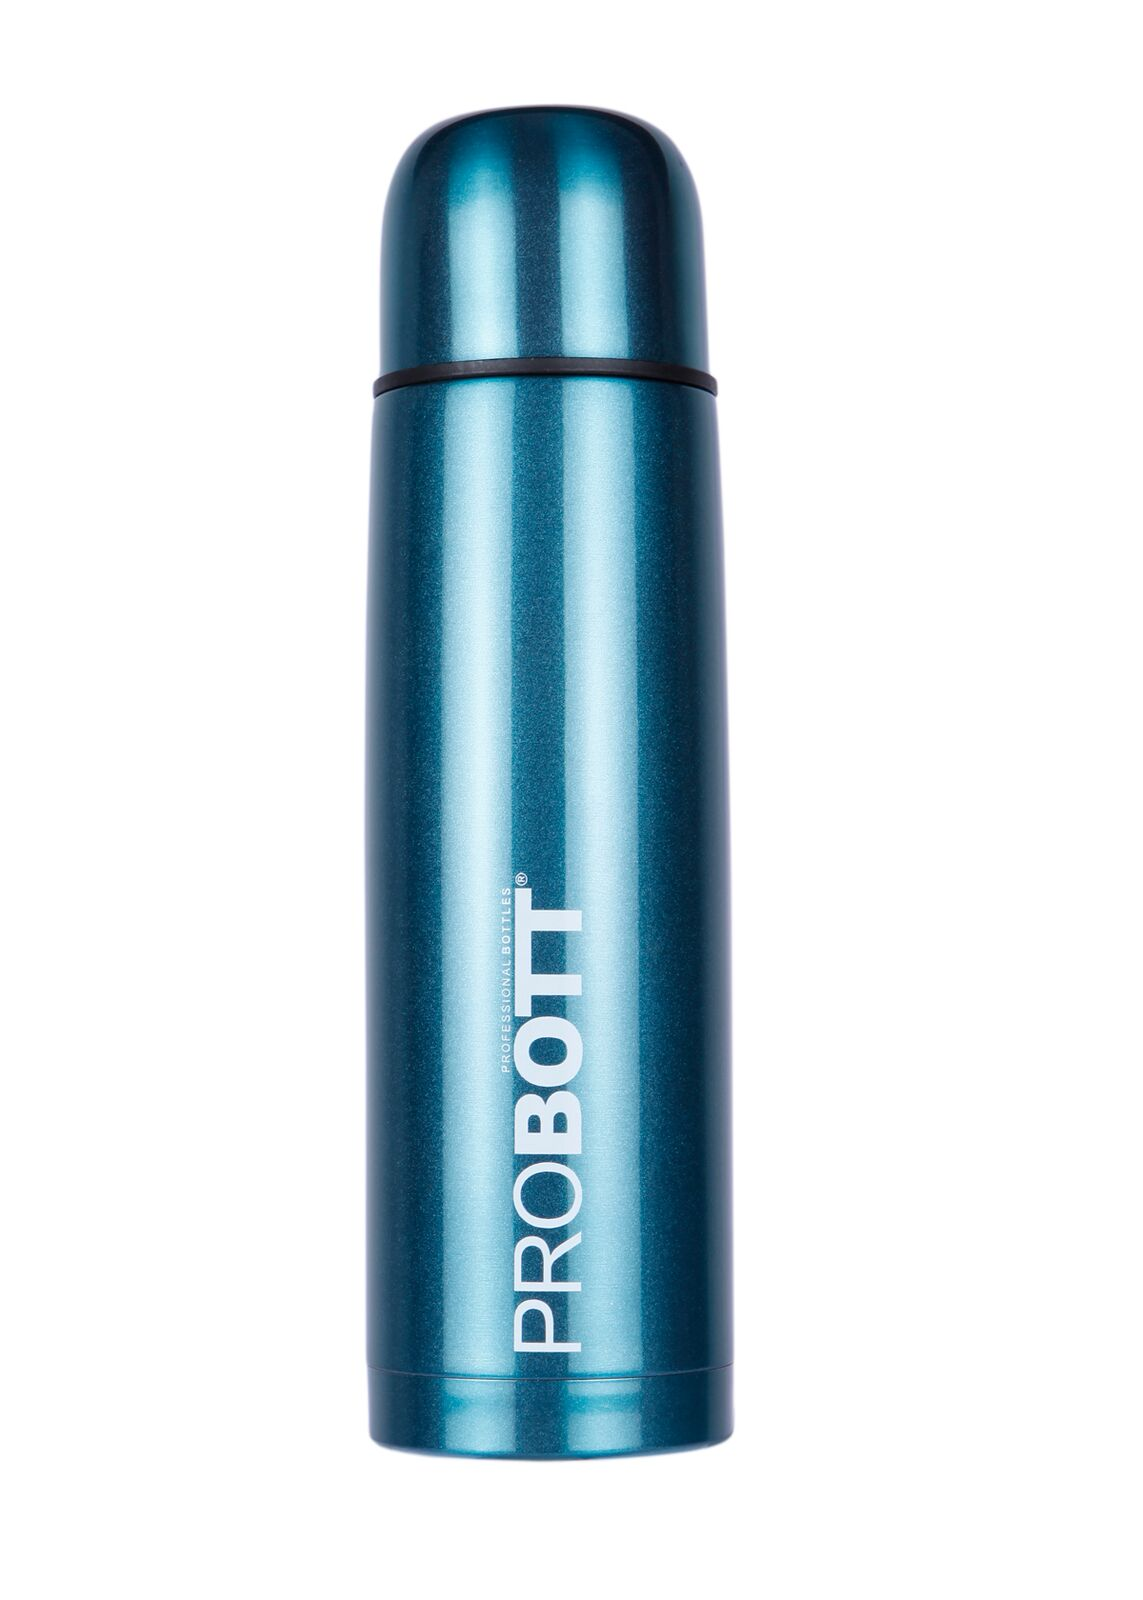 Probott Vacuum Flask 750 Ml Assorted With Sling Cover Stainless steel Thermoware in Blue / Green / Black / Red Colour by Probott